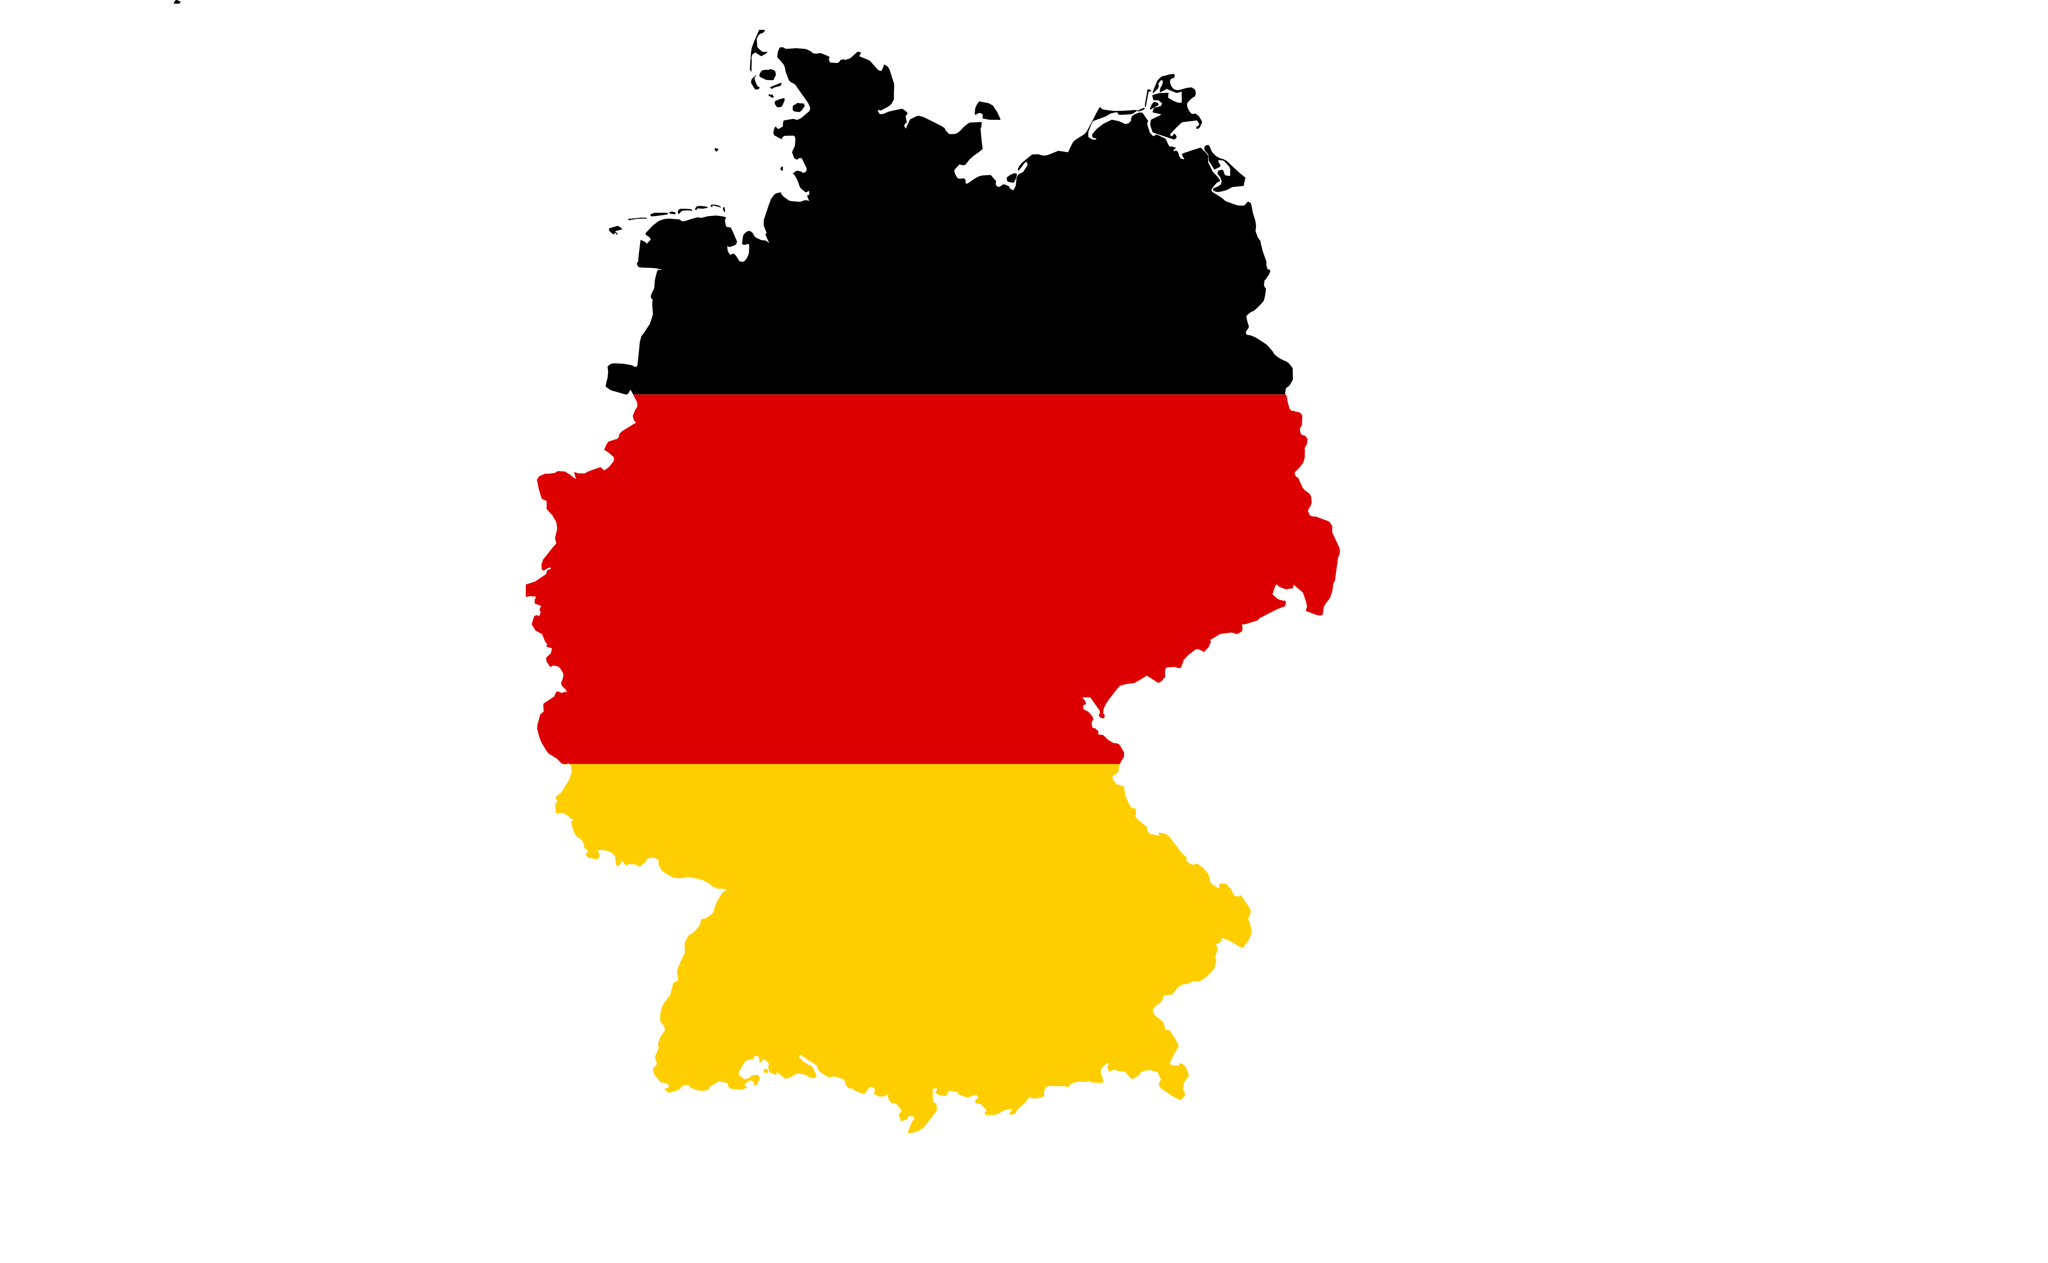 Motor insurance in Germany – Annotations to the German market image